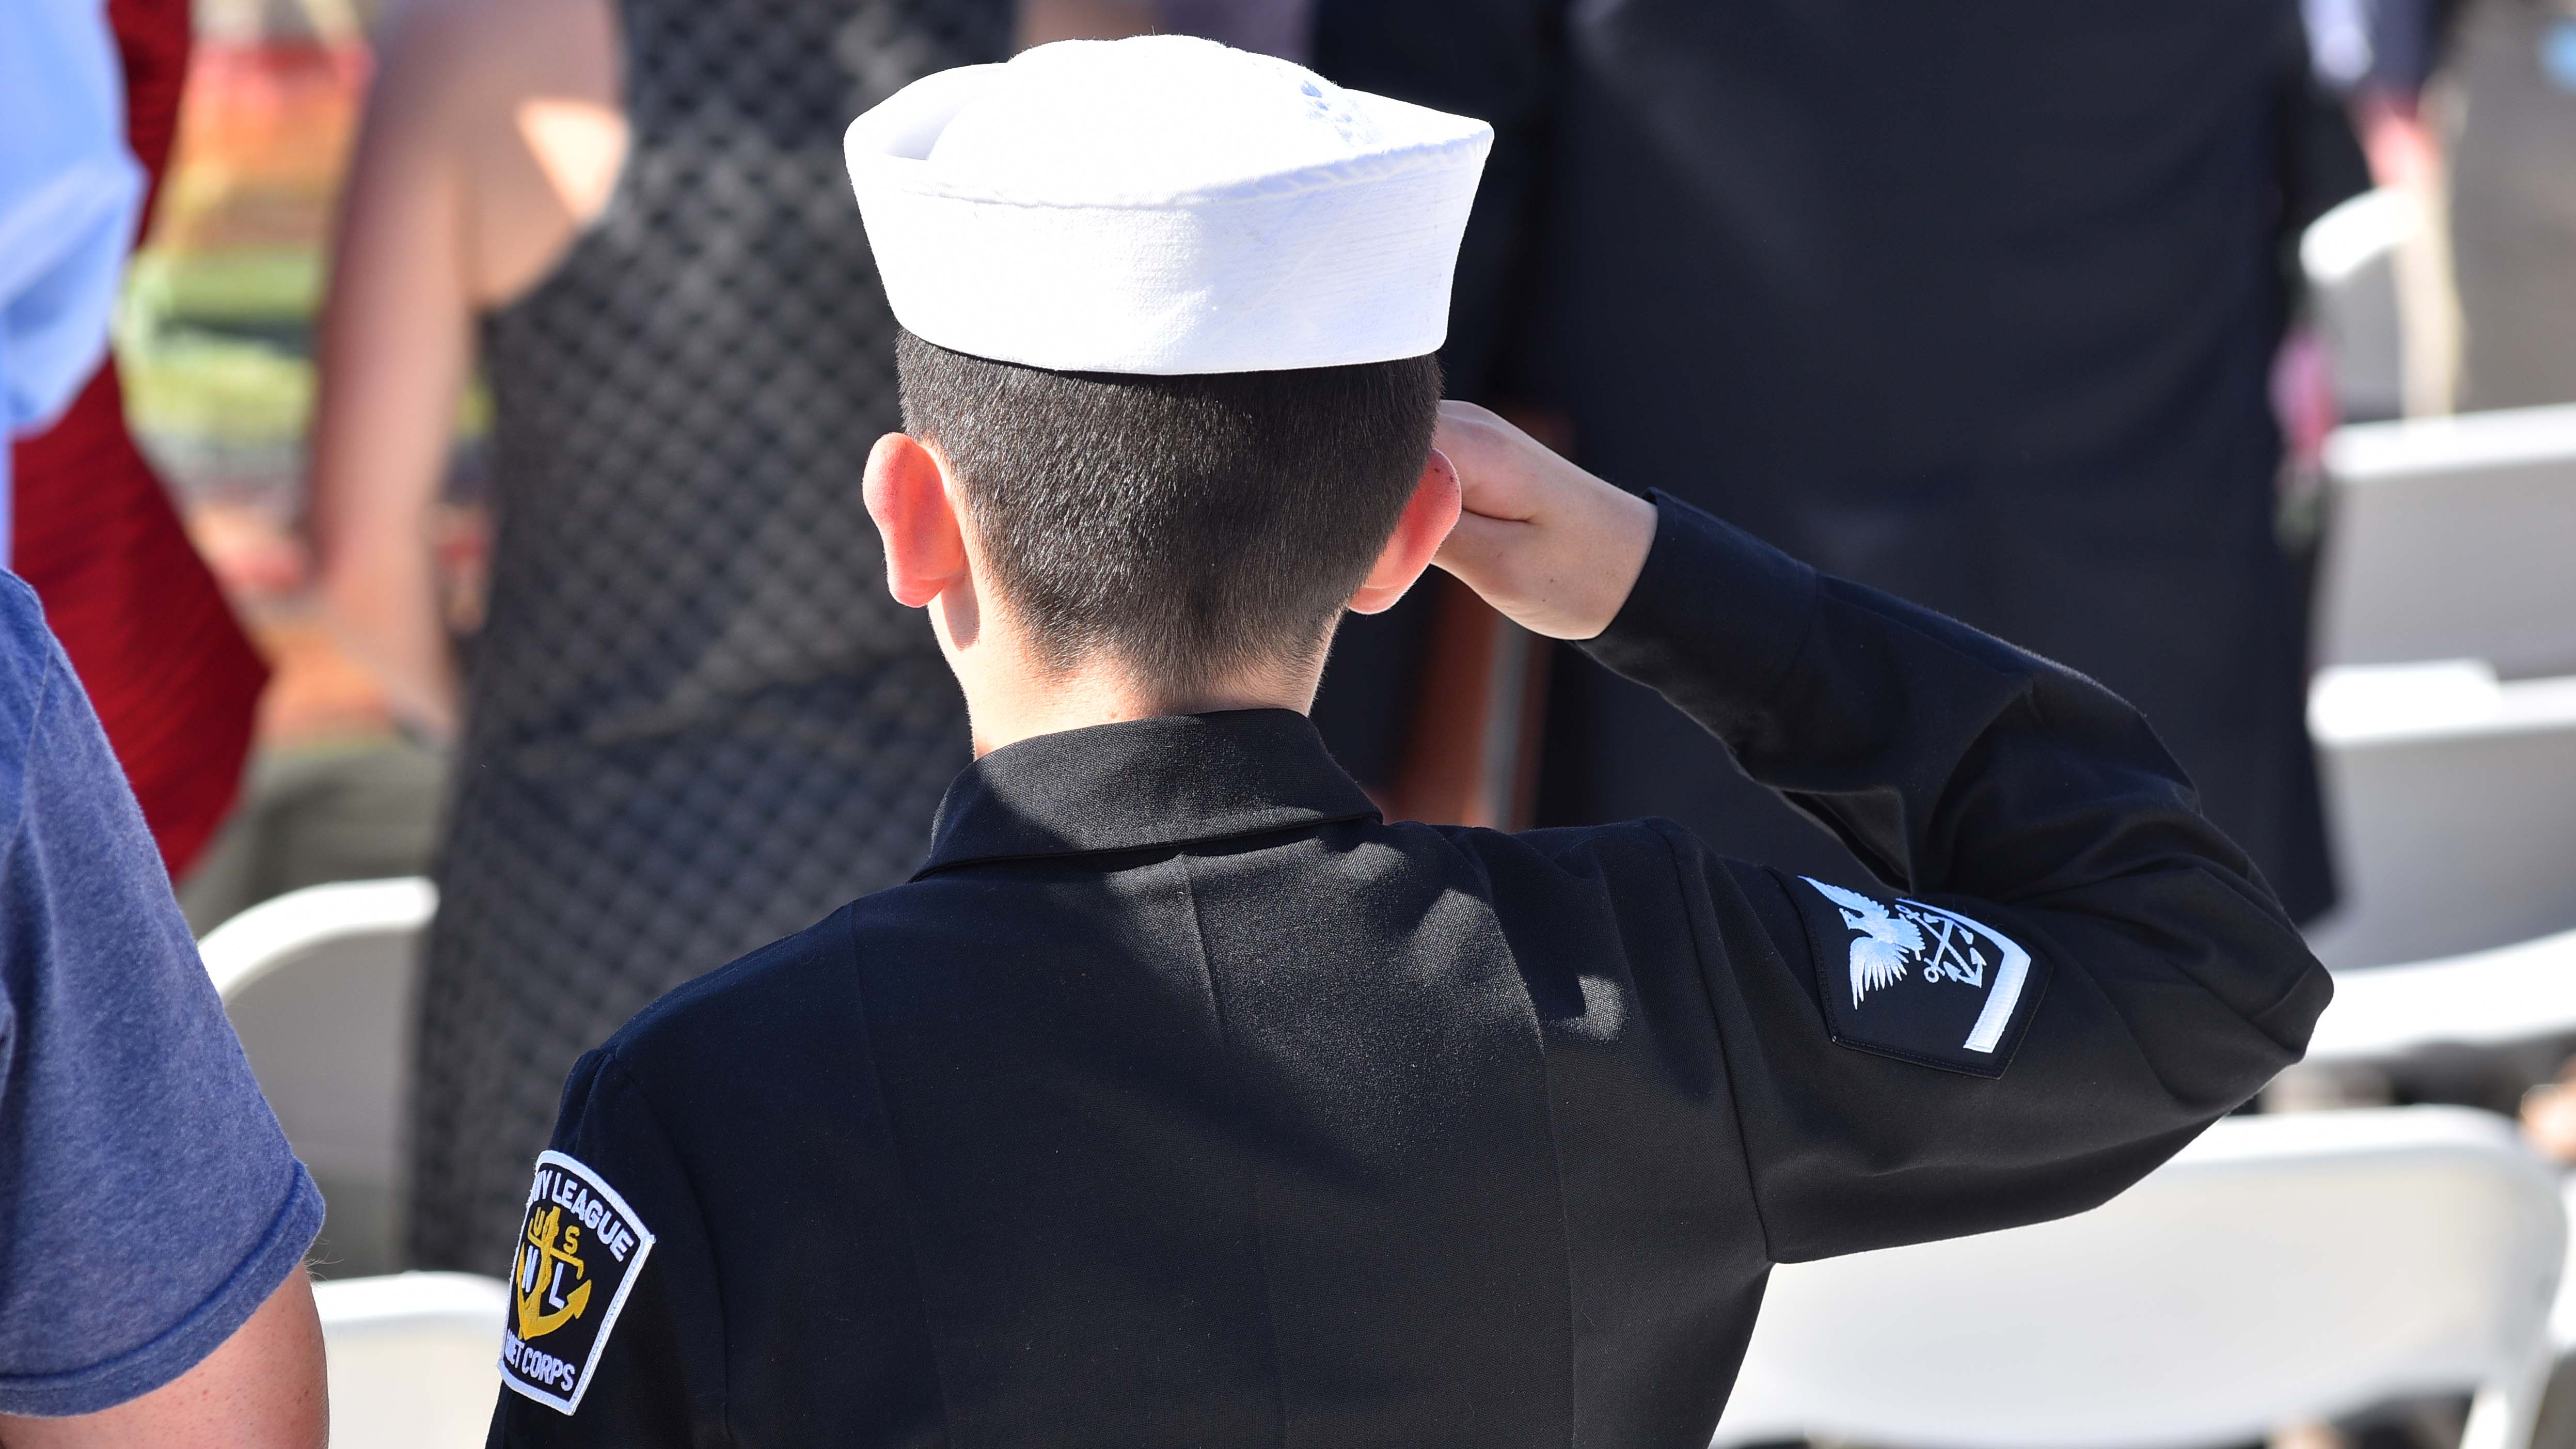 A member of the US Naval Seacadets salutes at the beginning of the program.